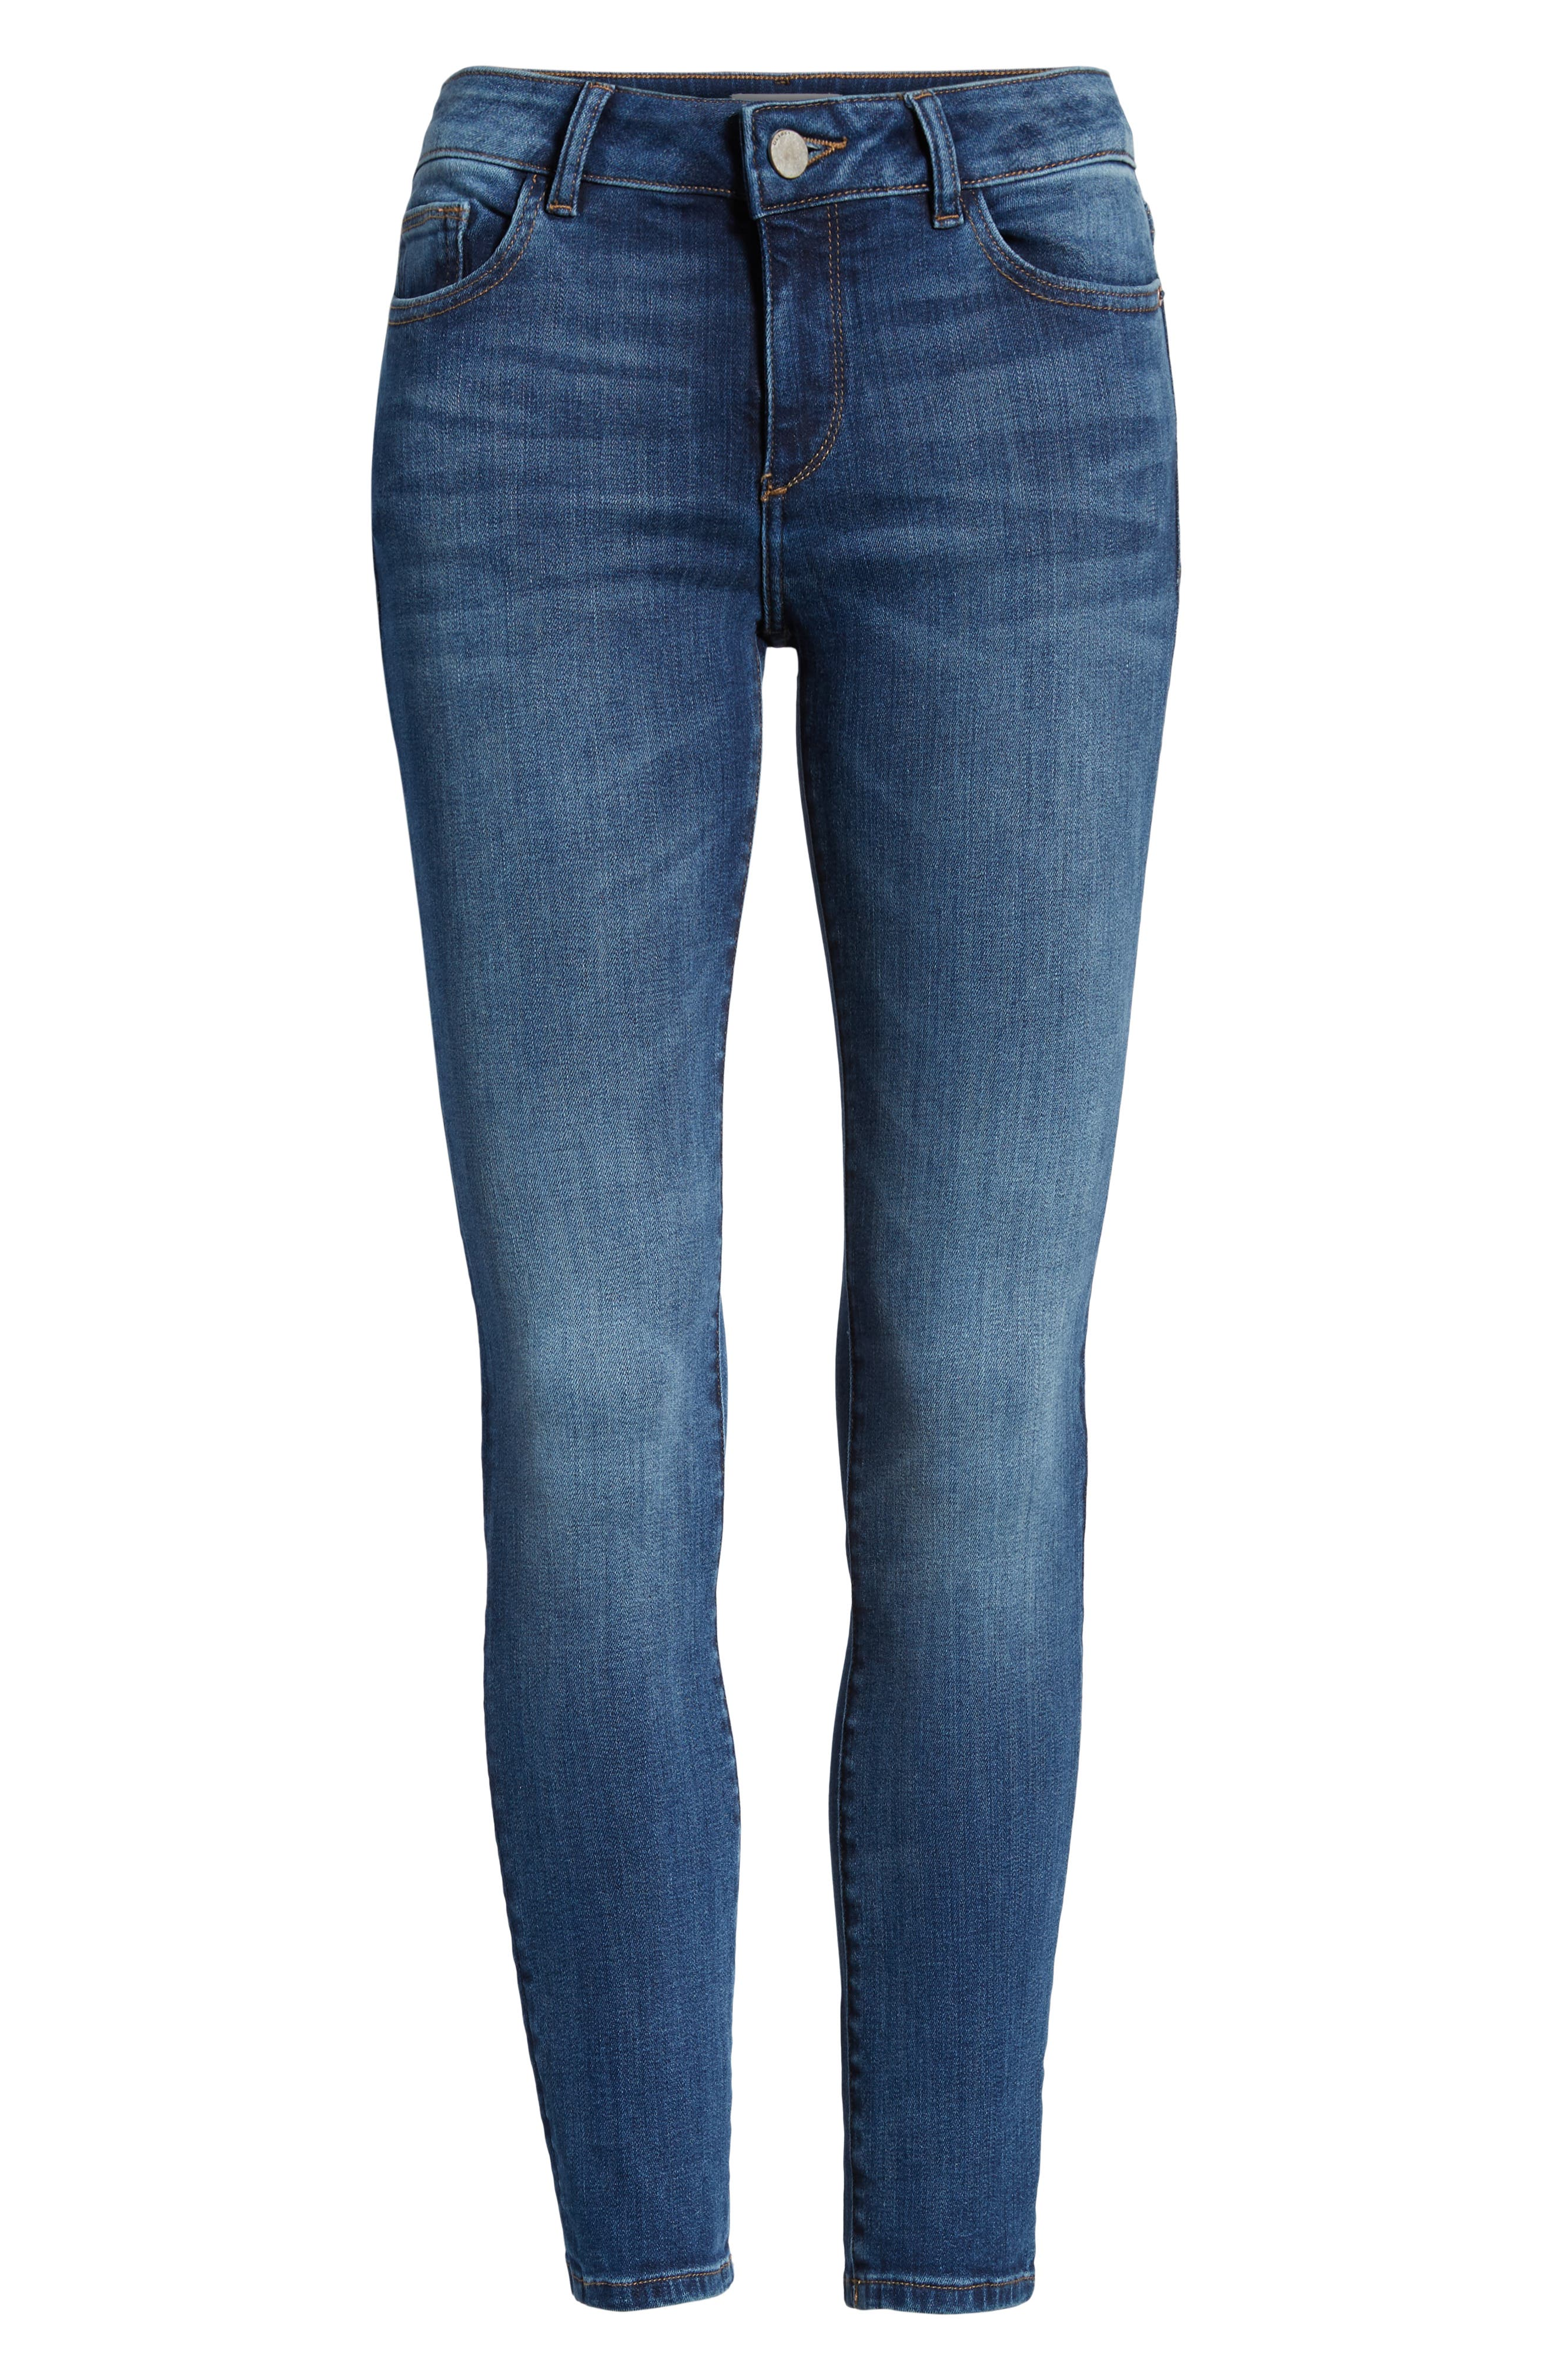 DL1961,                             Florence Midrise Instasculpt Ankle Skinny Jeans,                             Alternate thumbnail 7, color,                             SABINE